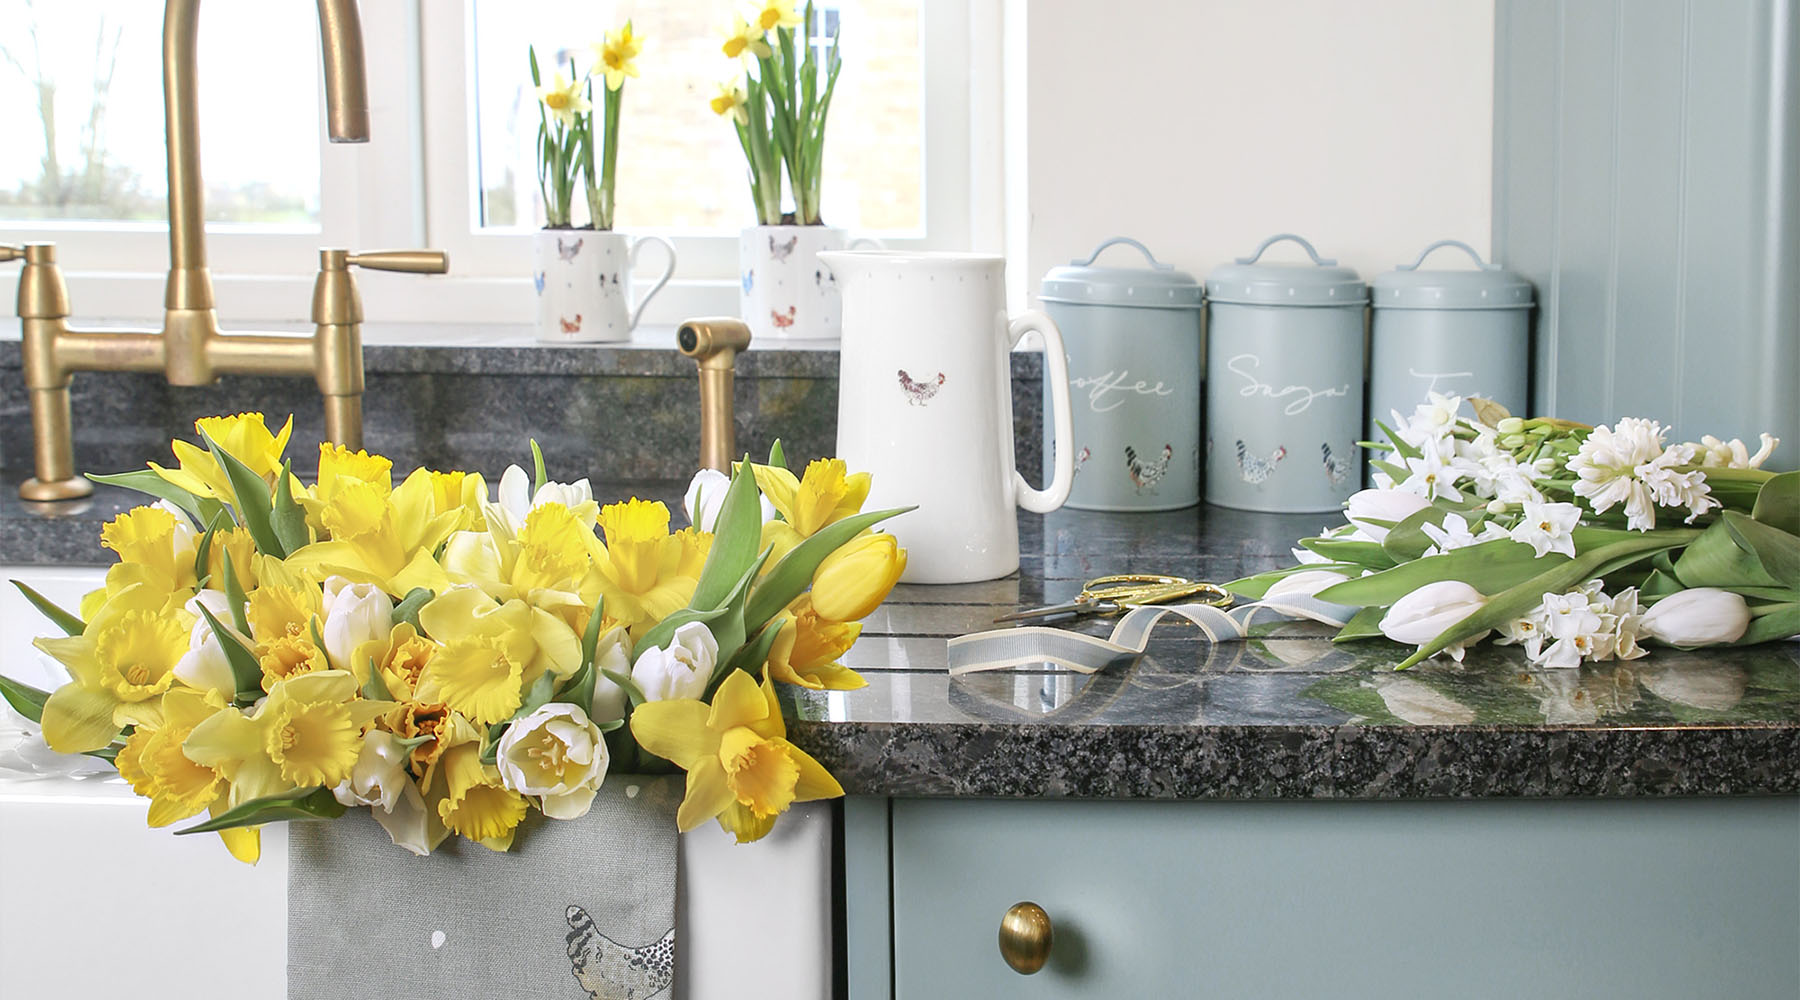 Chicken collection featuring hens by Sophie Allport